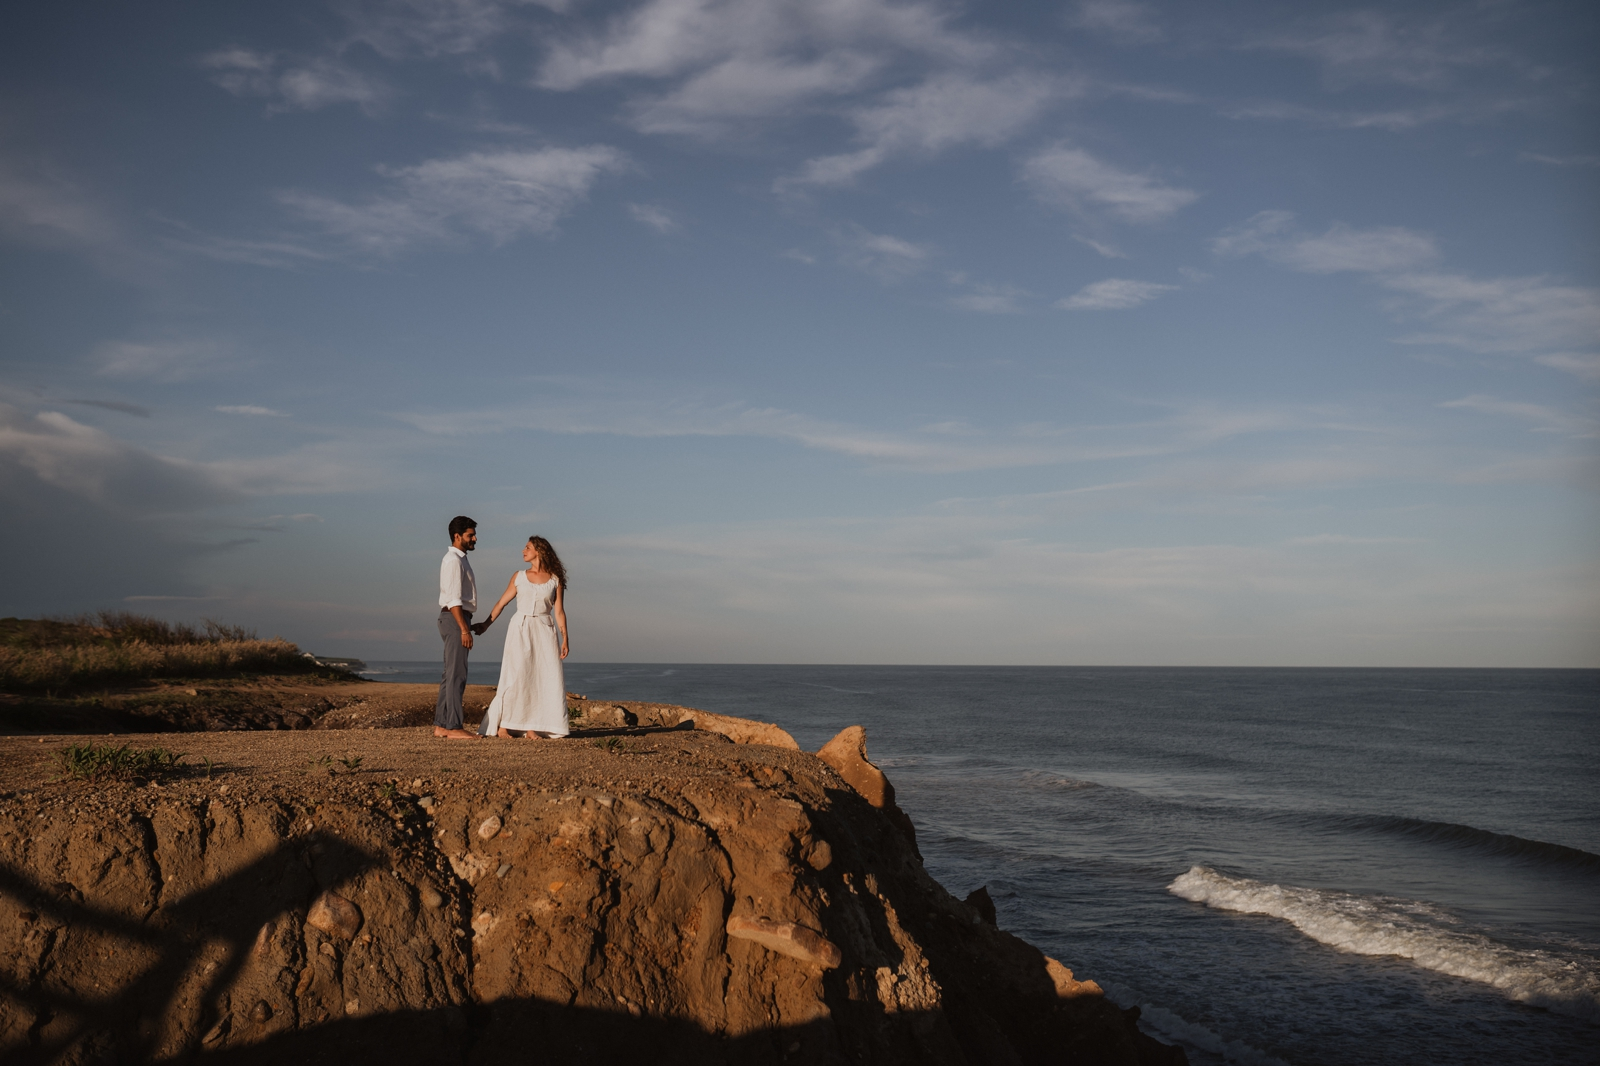 JJP_Nikki & Bud_Shadmoor_Montauk_NY_Cliff Engagement Session22.jpg_blog.jpg